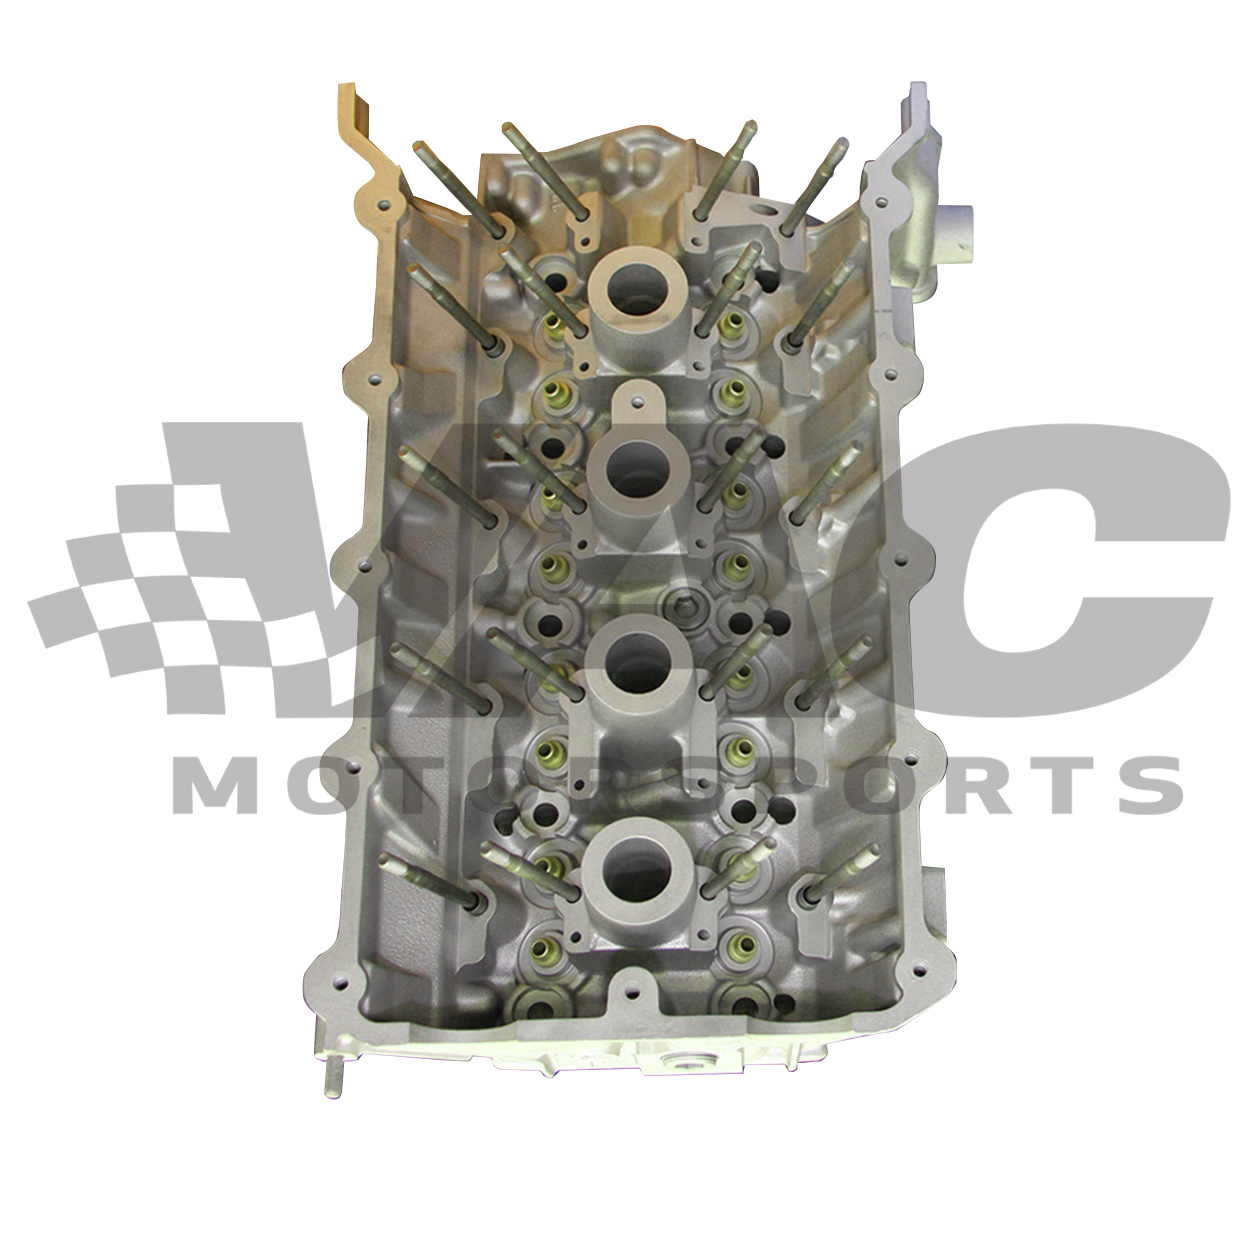 VAC - M44 Stage 2 Performance Cylinder Head MAIN